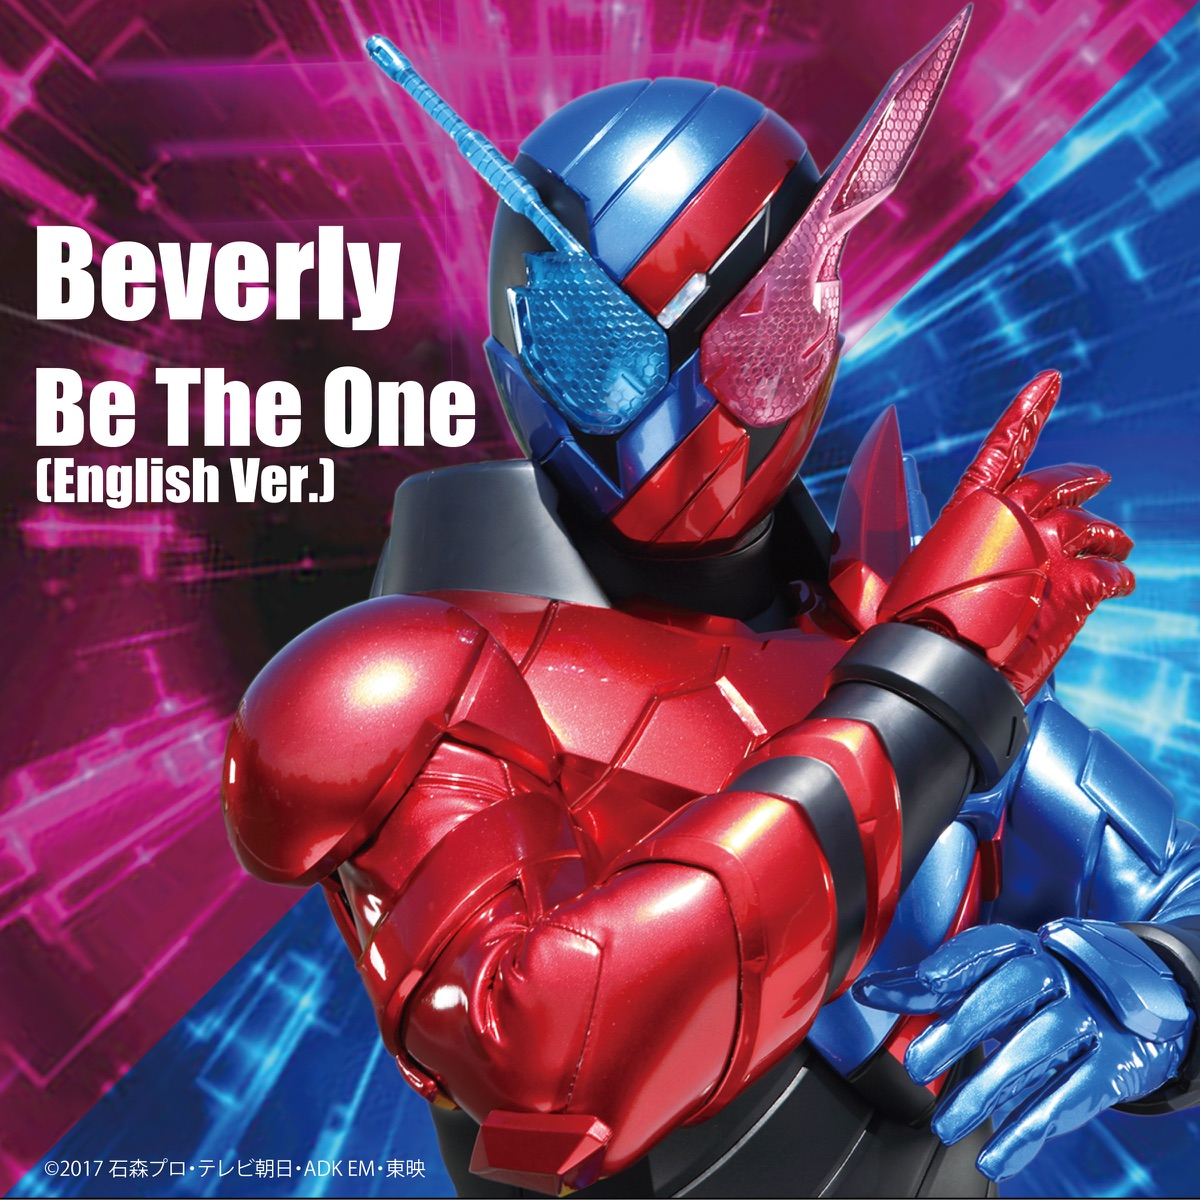 『Beverly - Be The One (English Ver.) 歌詞』収録の『Be The One (English Ver.)』ジャケット